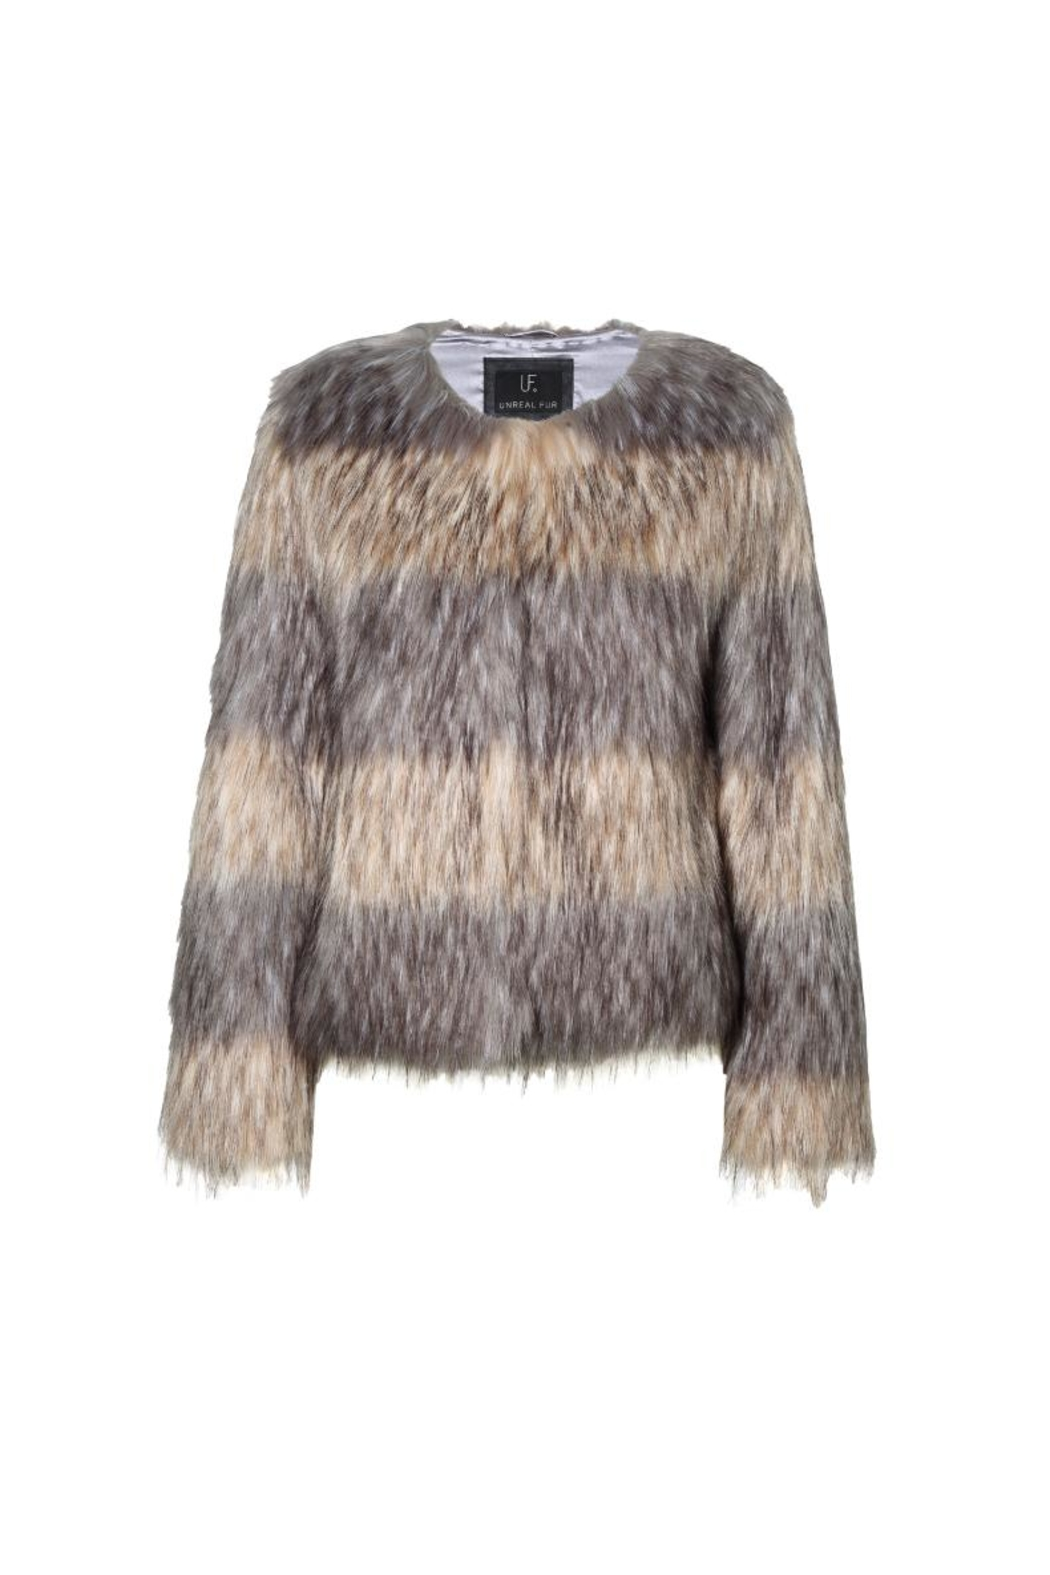 UNREAL FUR Landscape Jacket - Front Full Image